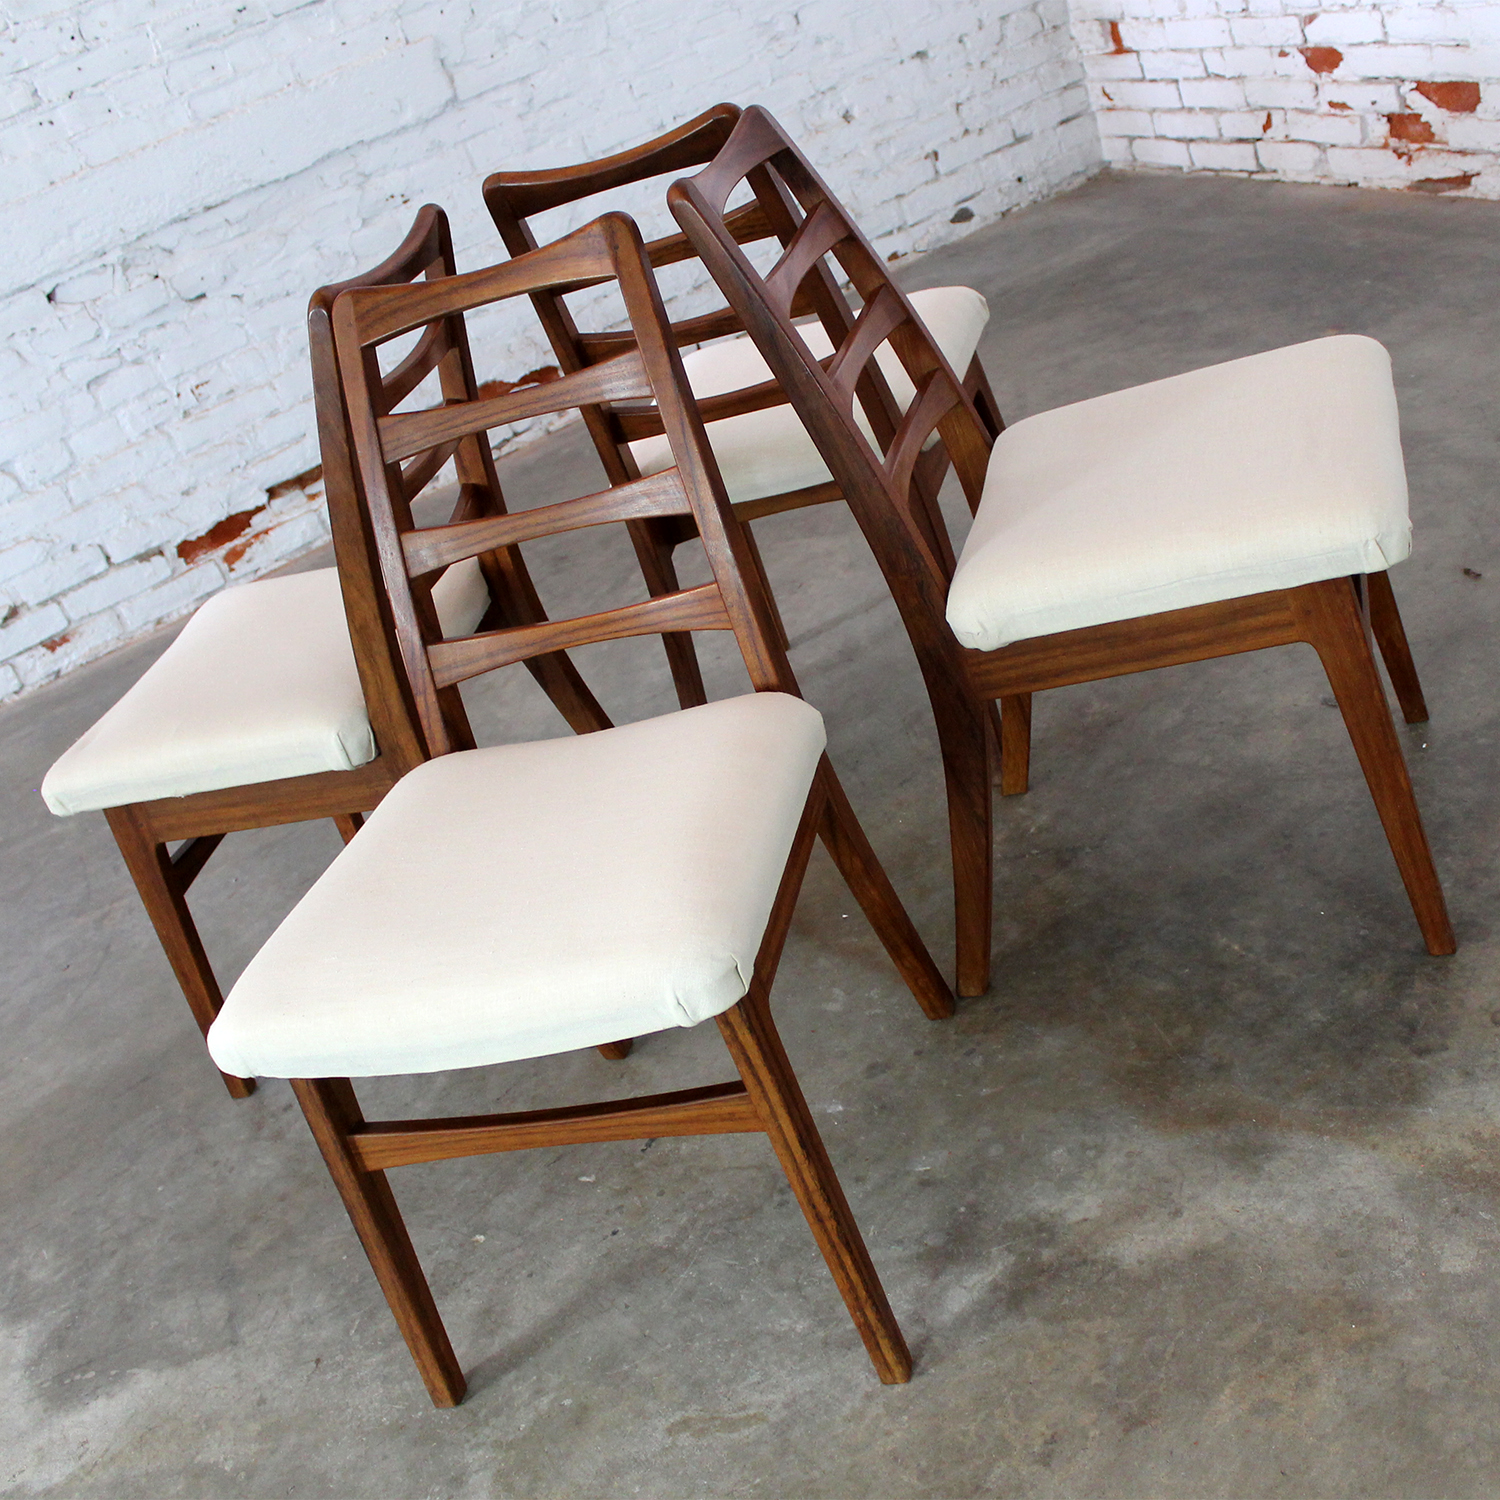 Rosewood Ladderback Dining Chairs Vintage Mid Century Modern